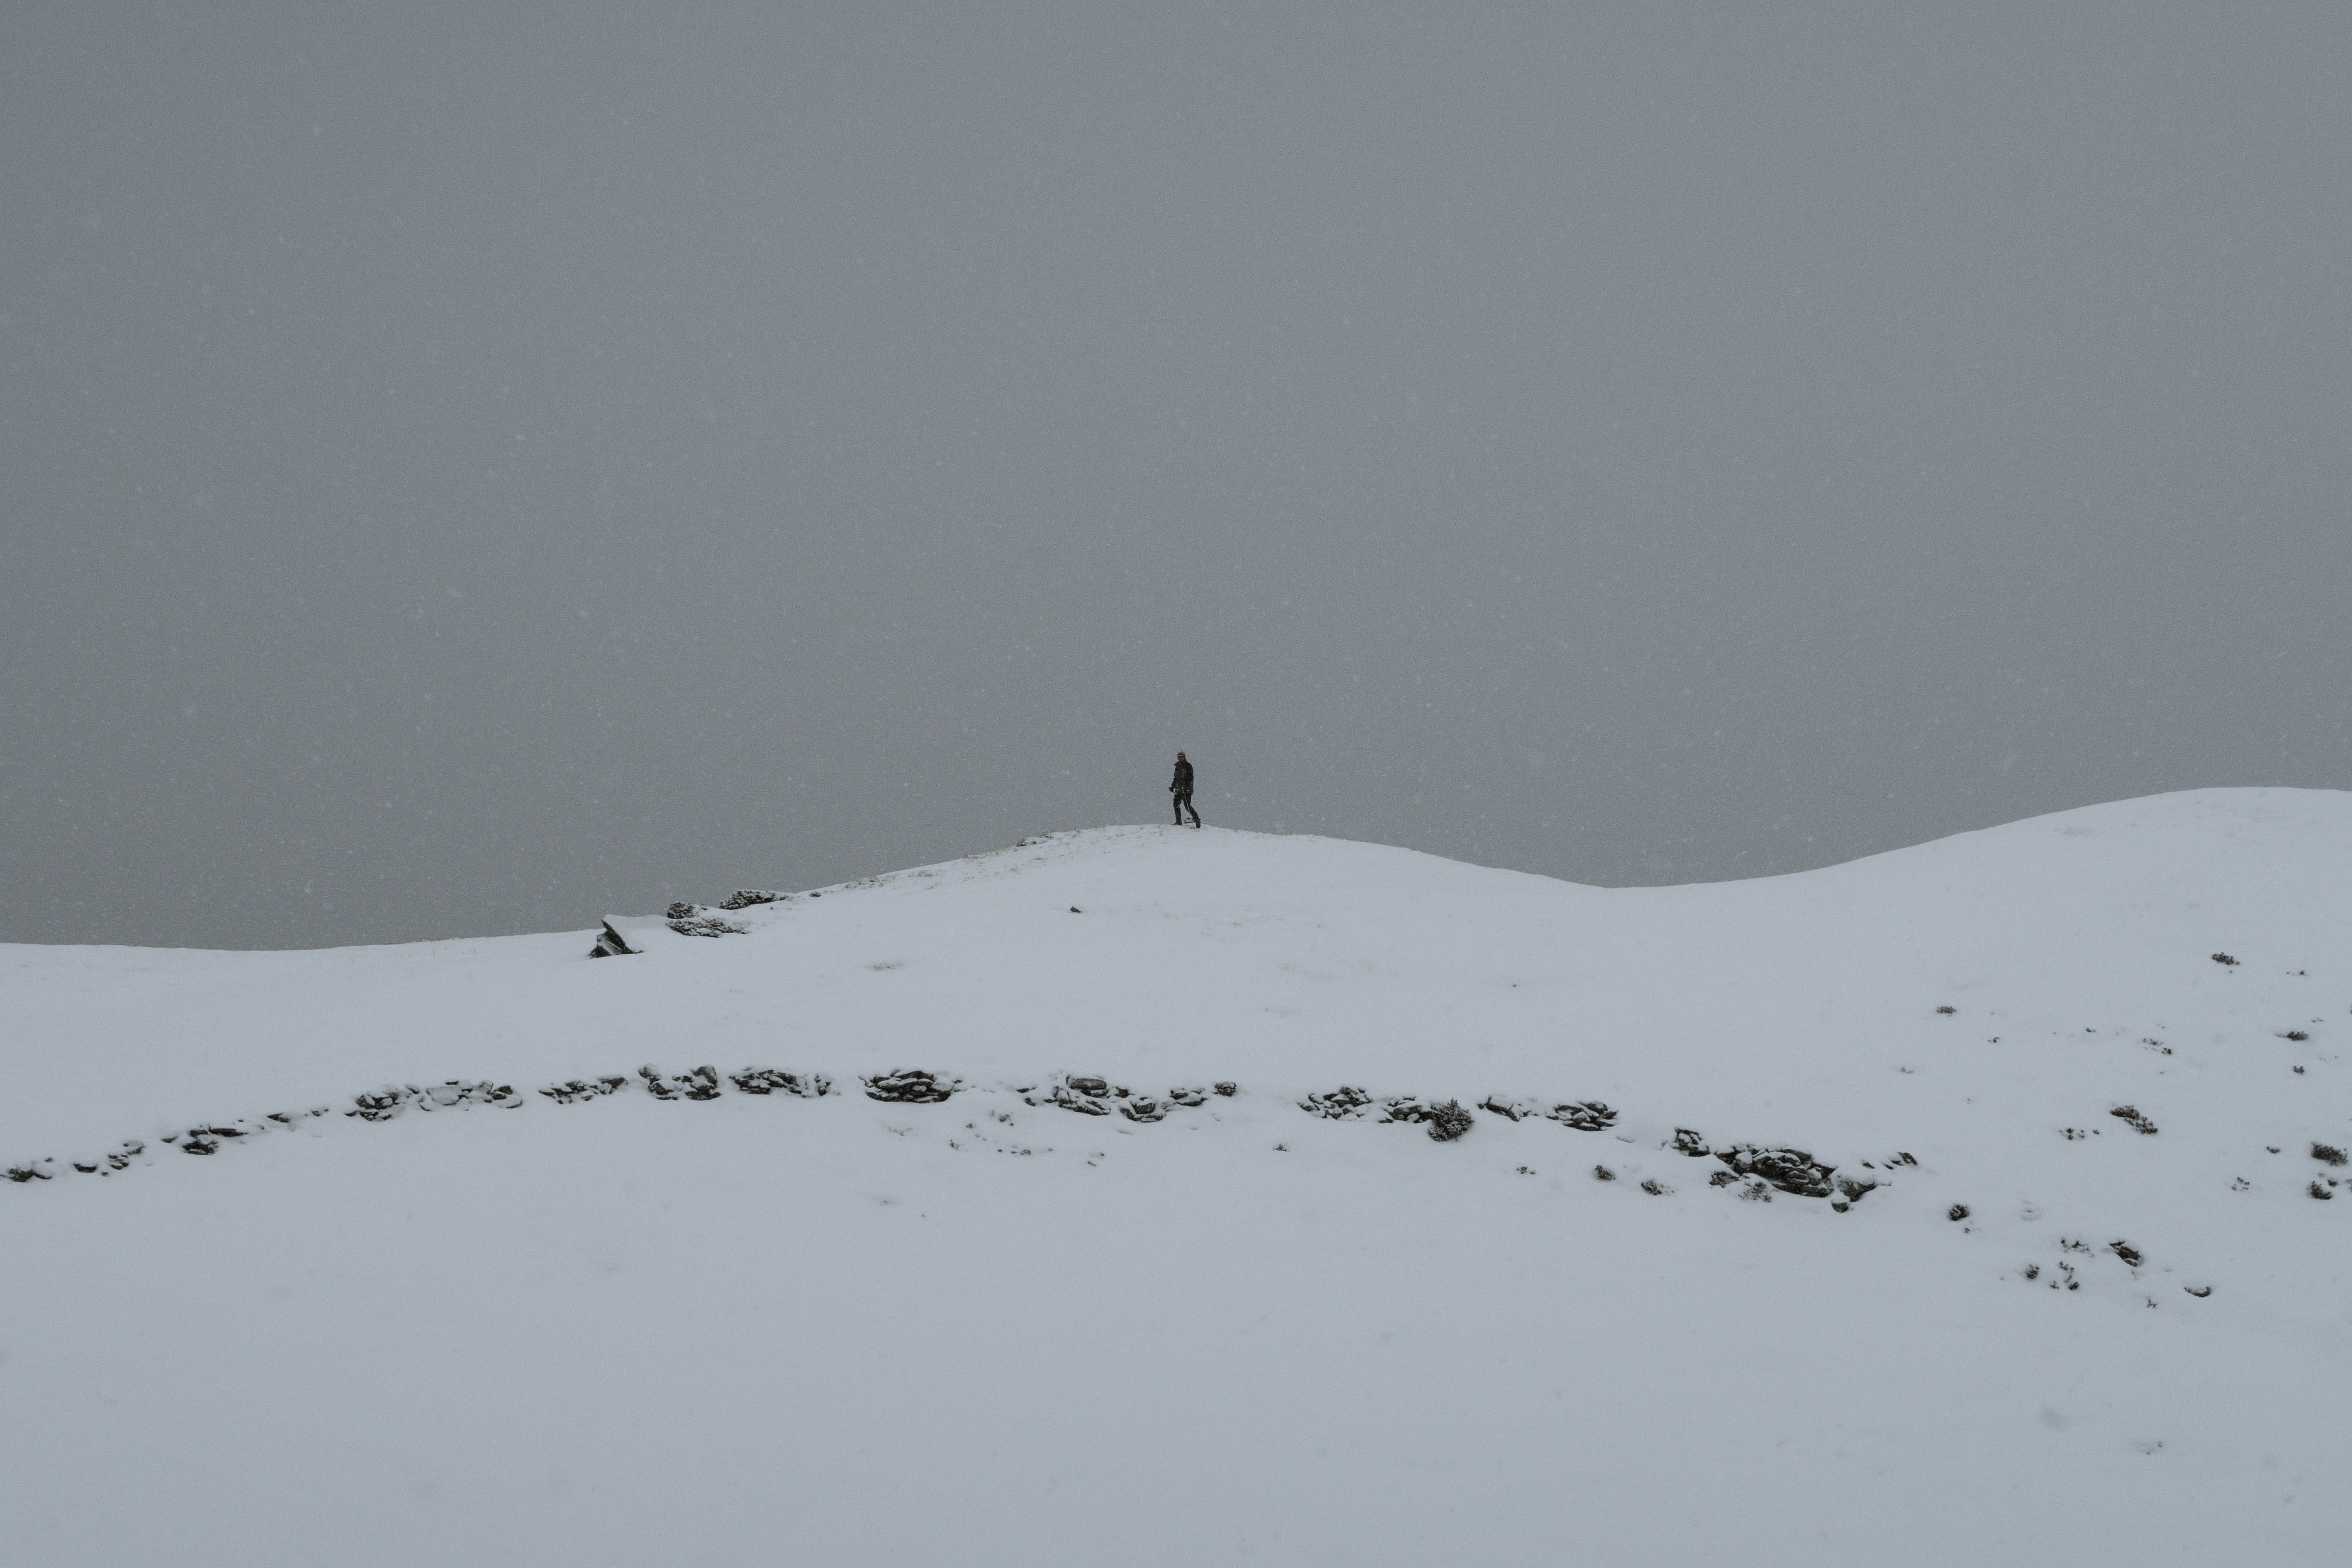 person walking on snow at daytime